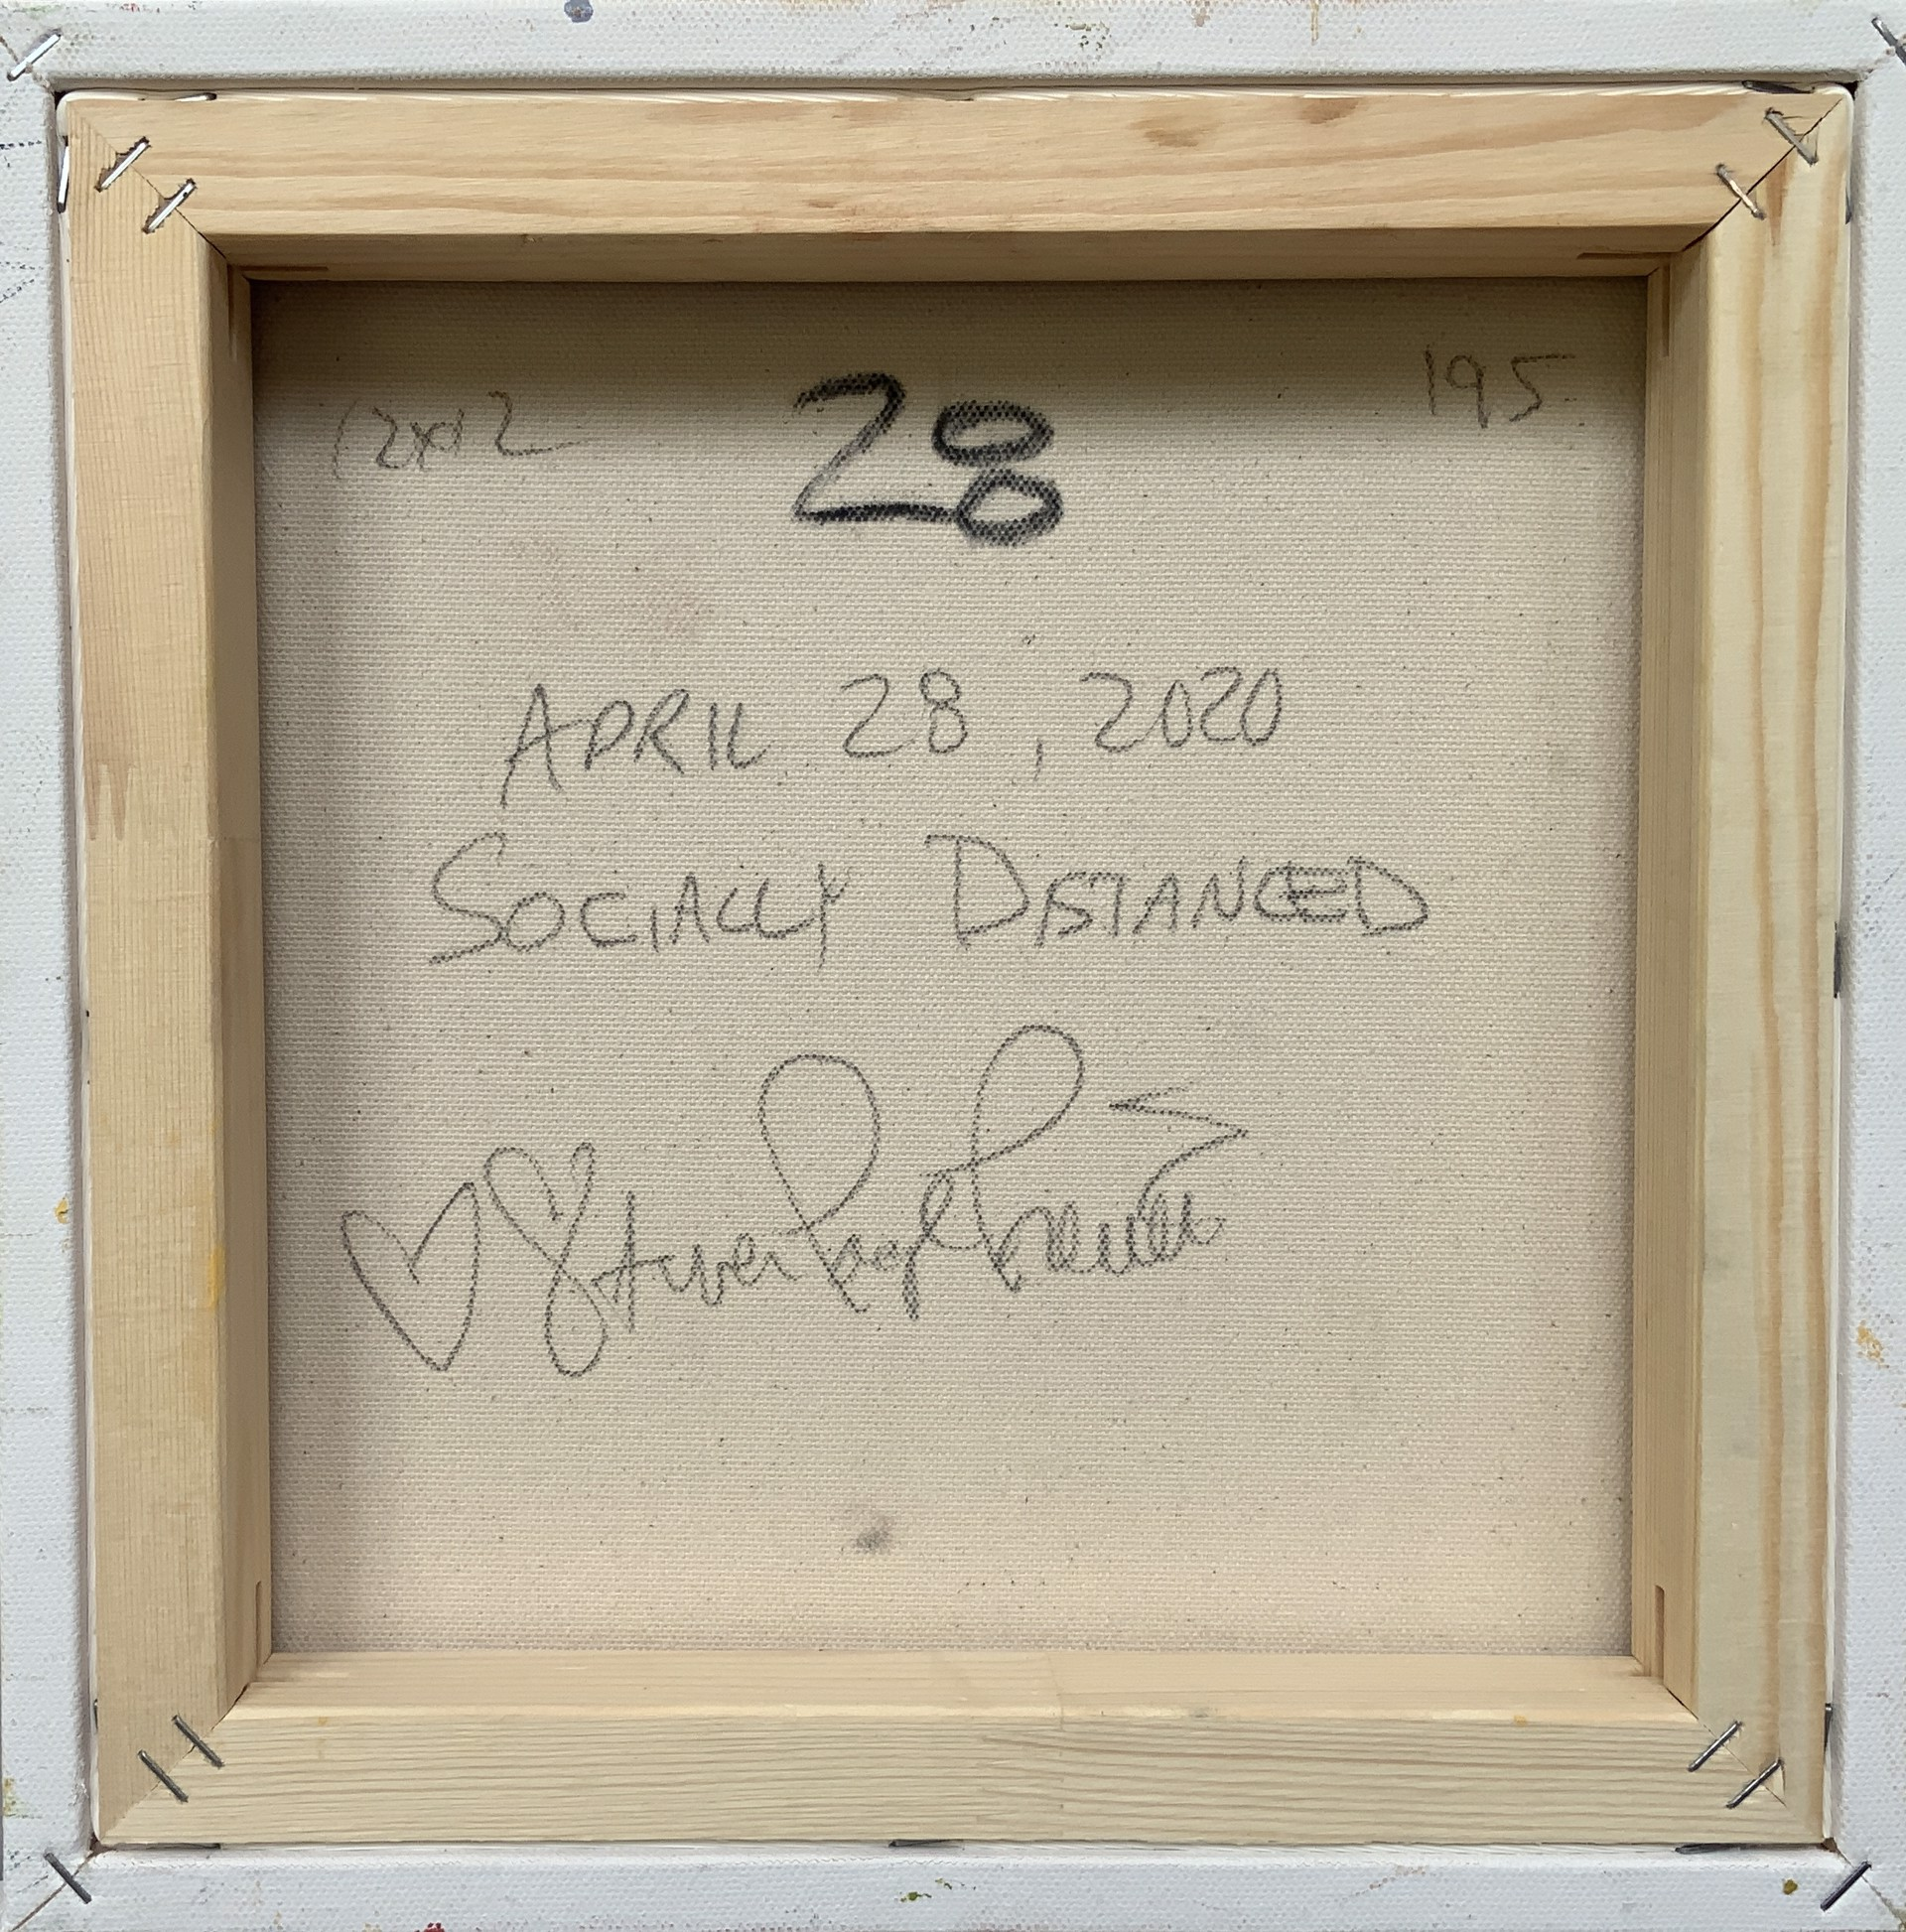 Socially Distanced 28 by Steven Page Prewitt